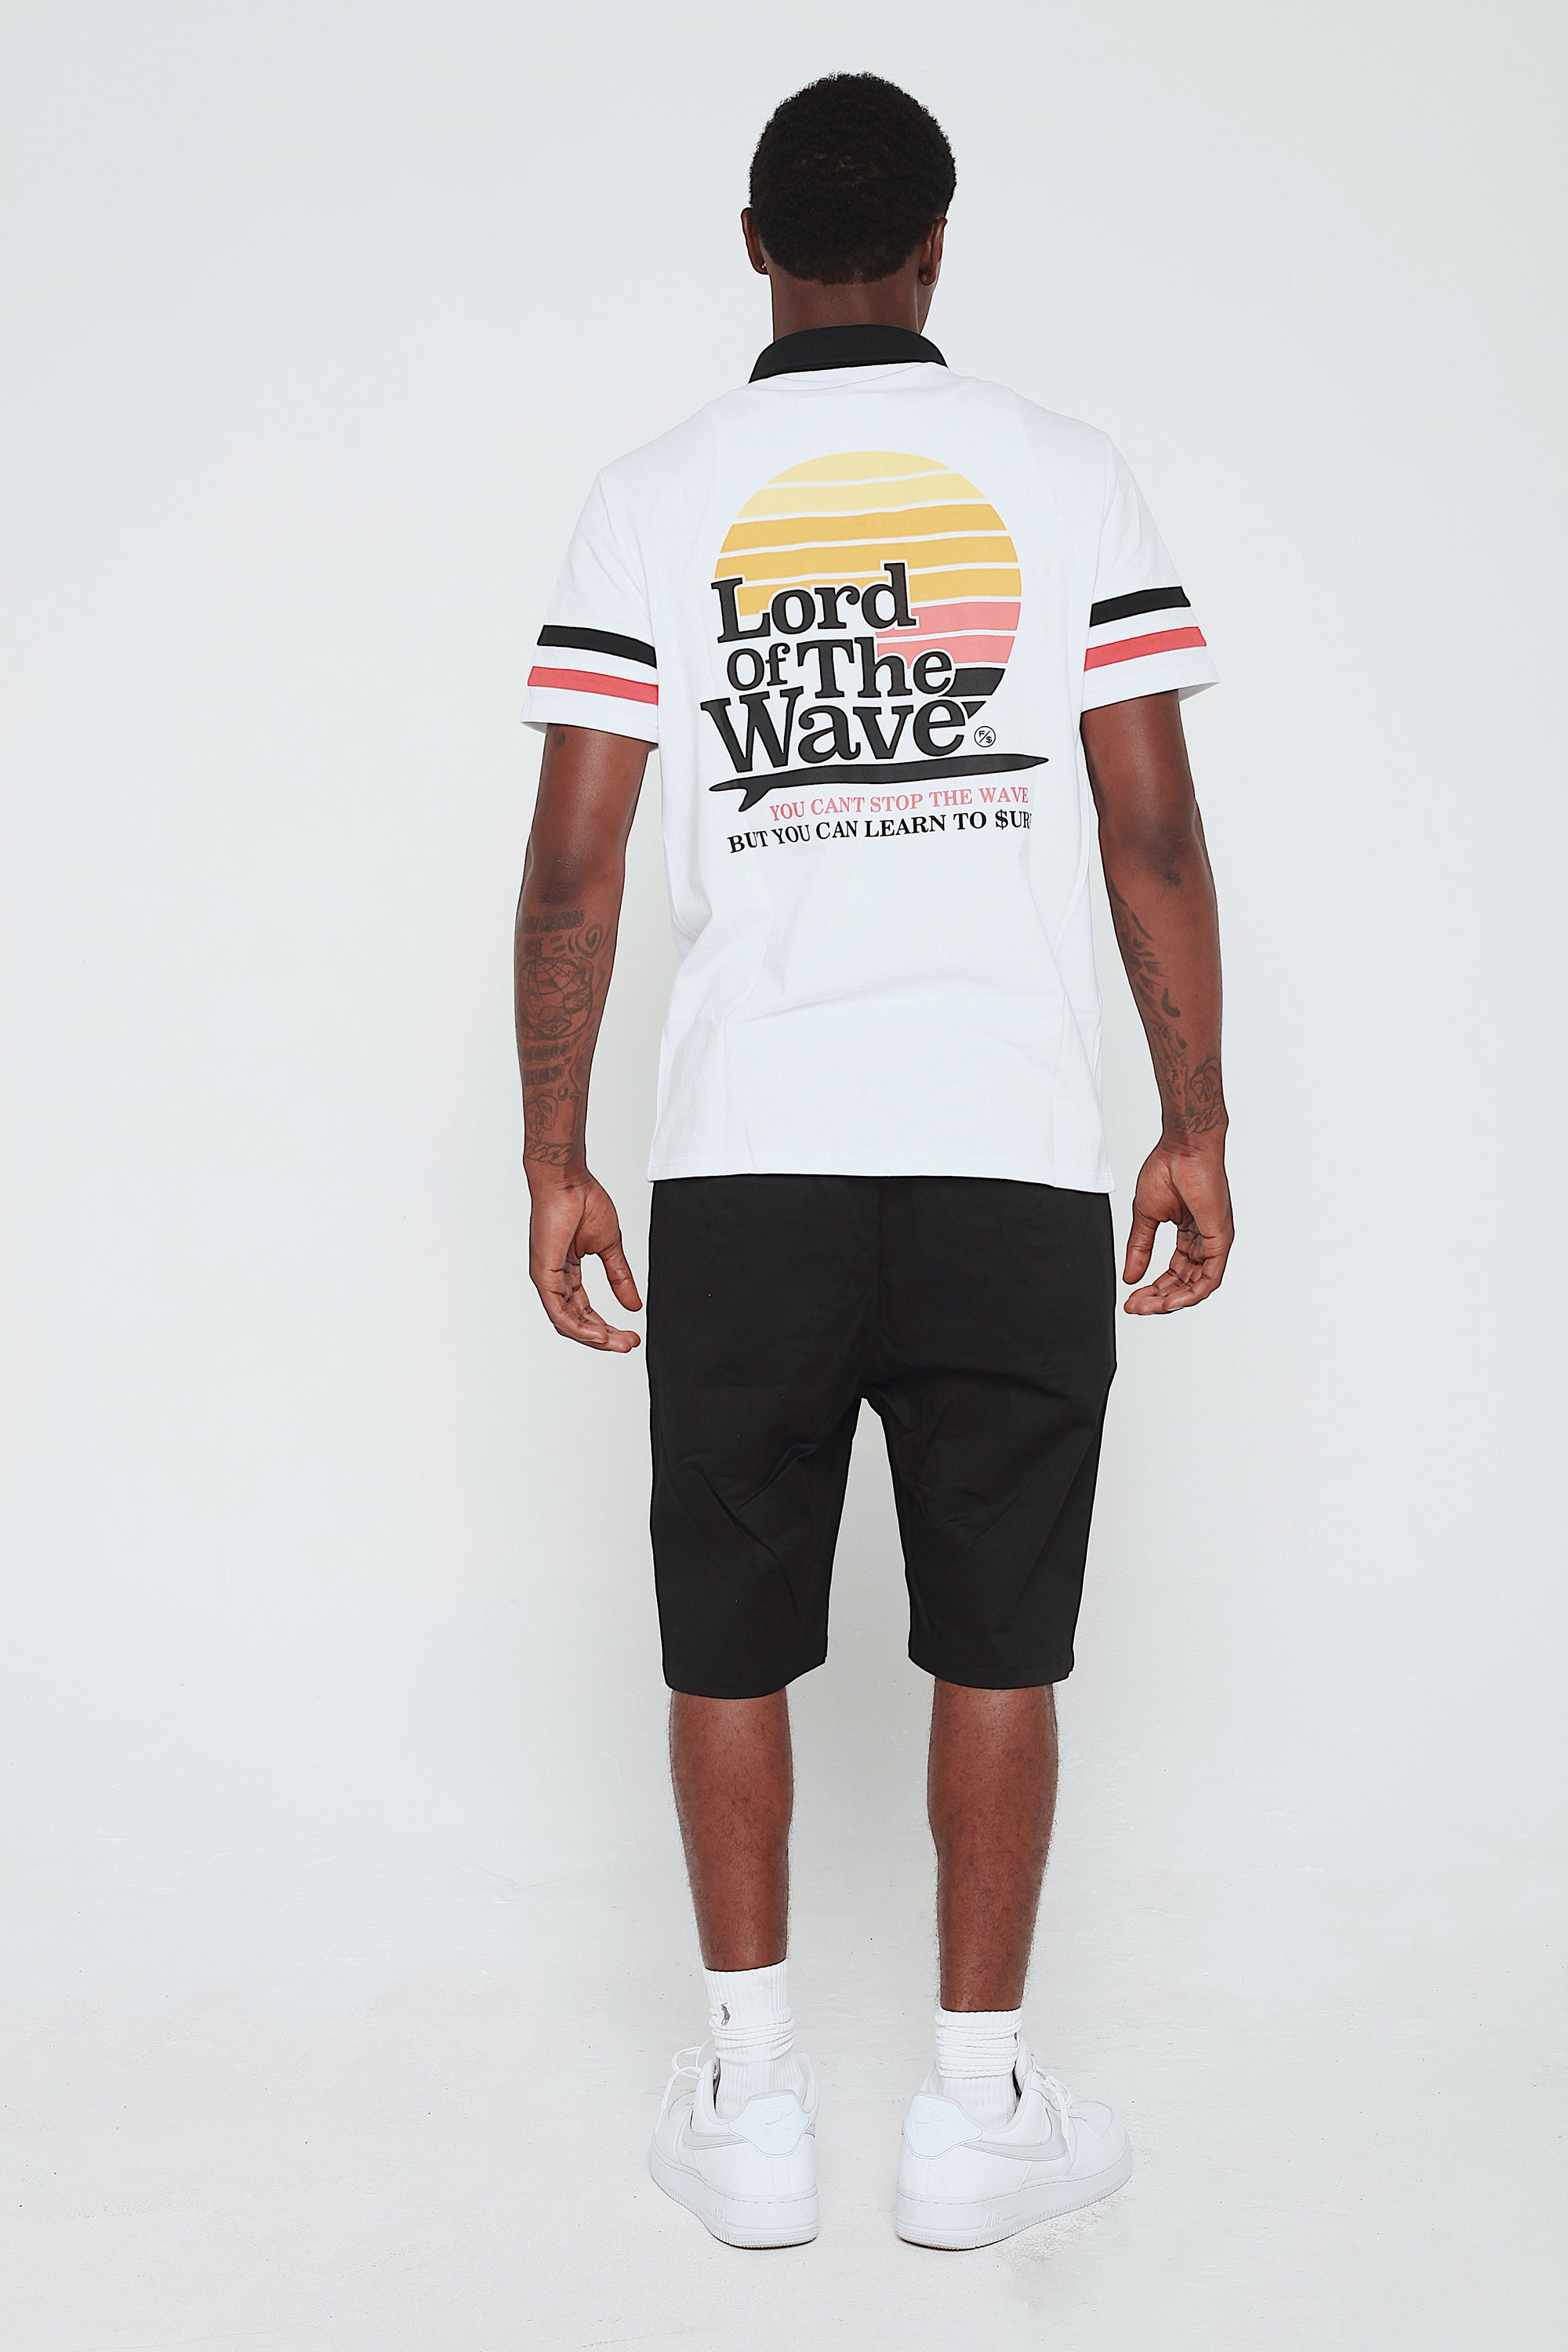 Lord of the Wave Shorts